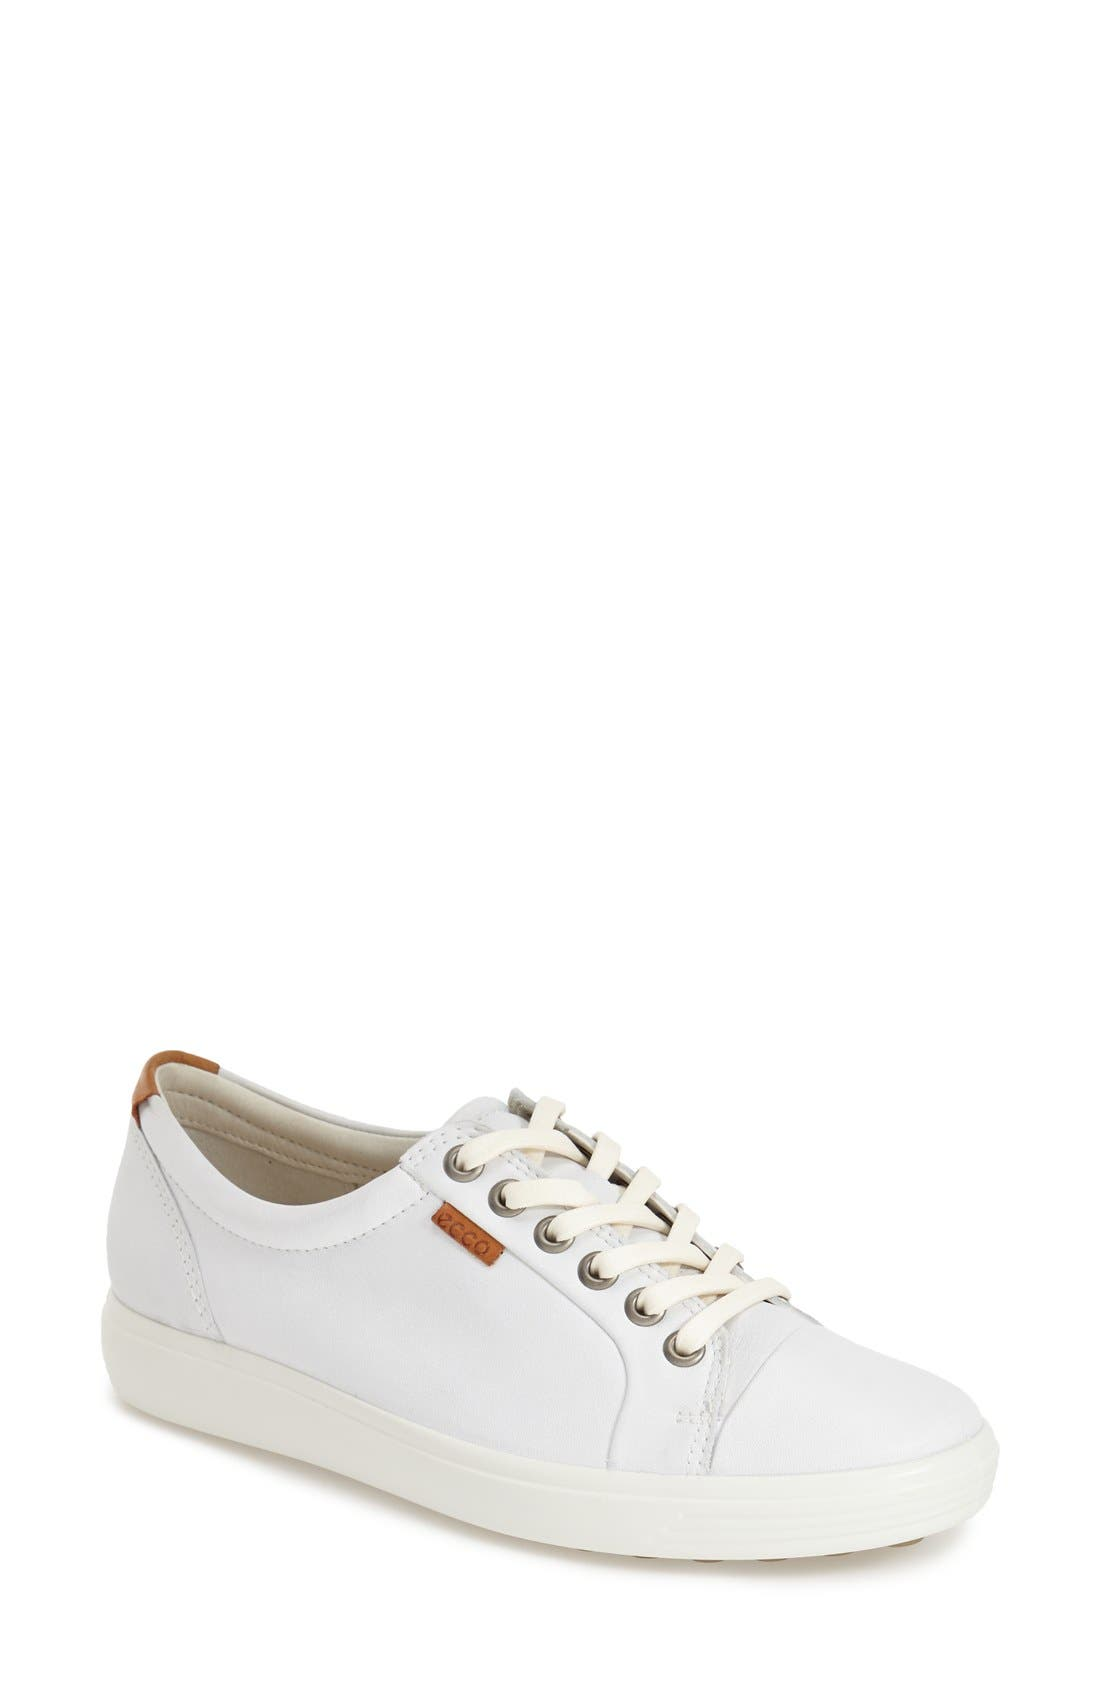 'Soft 7' Cap Toe Sneaker,                         Main,                         color, White